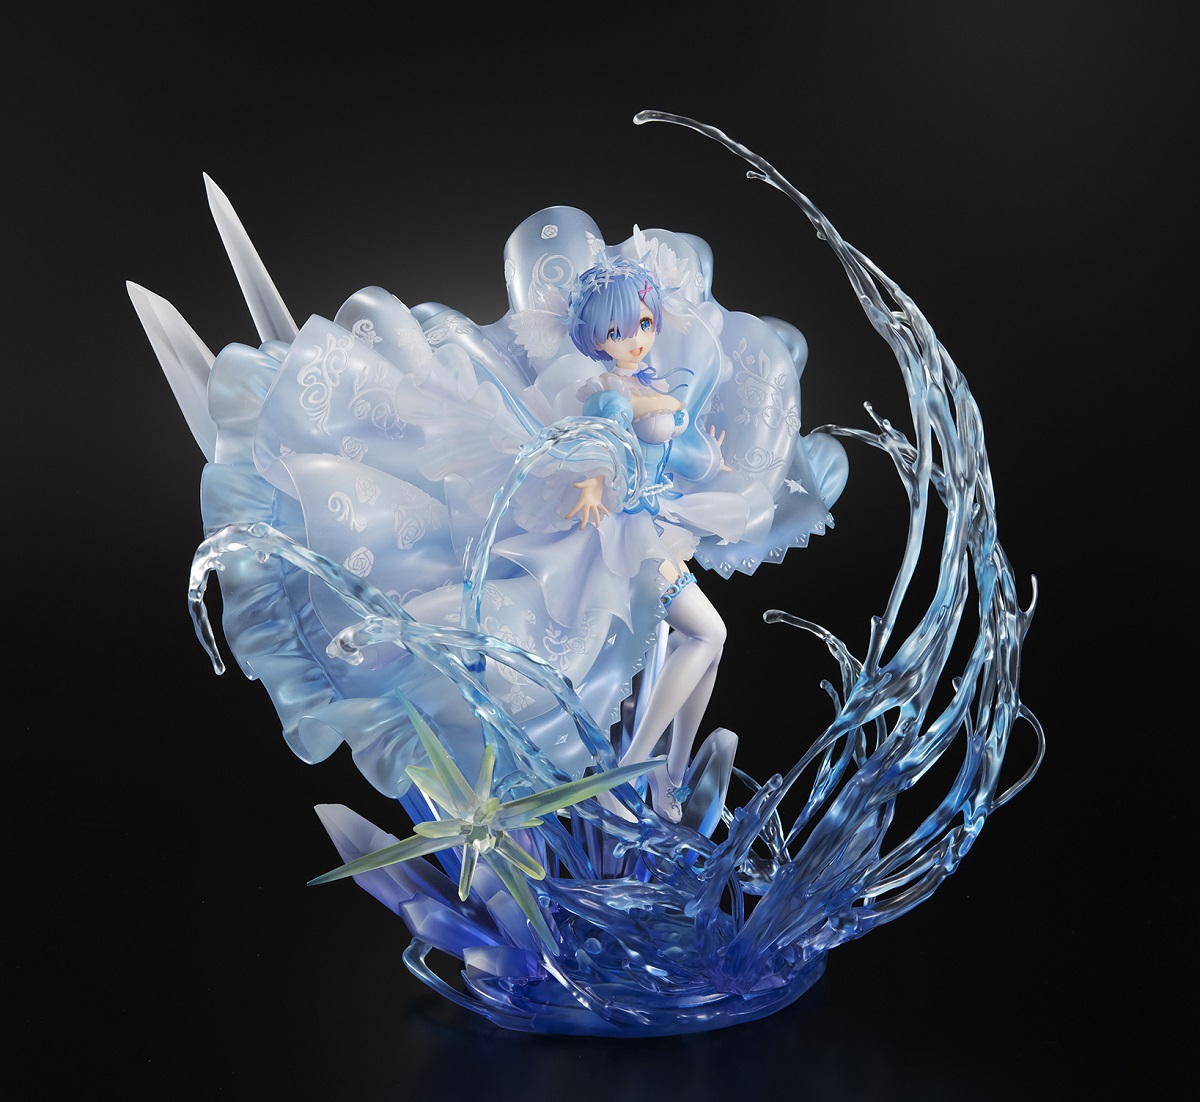 Rem Crystal Dress Ver Re:ZERO Figure